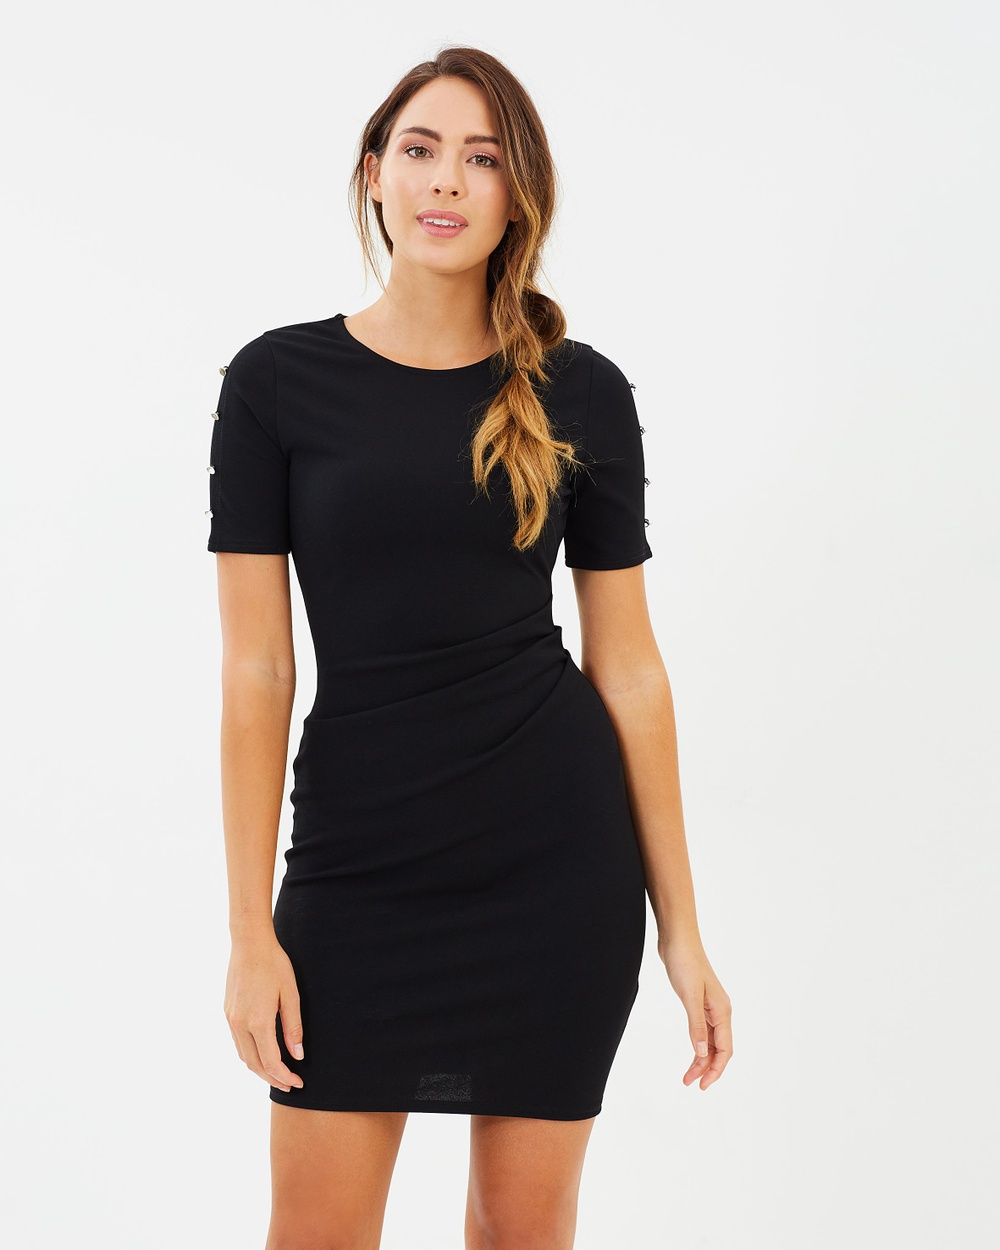 Dorothy Perkins Studded Sleeve Crepe Body Con Dress Bodycon Dresses Black Studded Sleeve Crepe Body-Con Dress